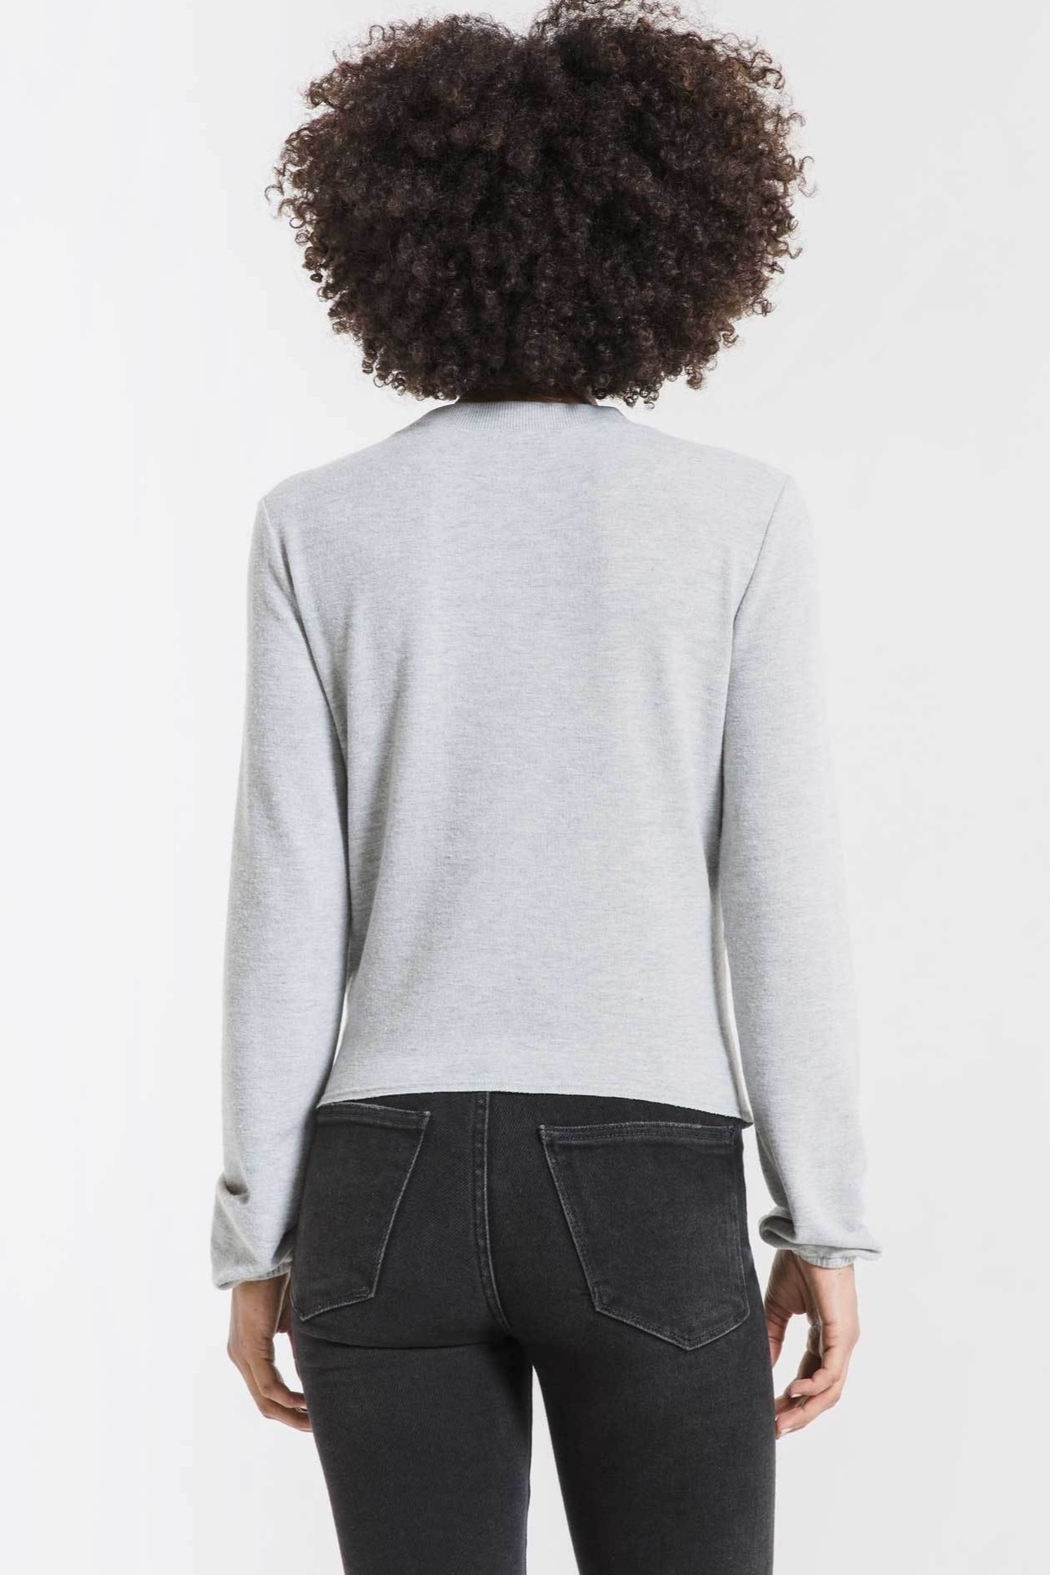 z supply Soft Spun Ruched Long Sleeve Top - Front Full Image